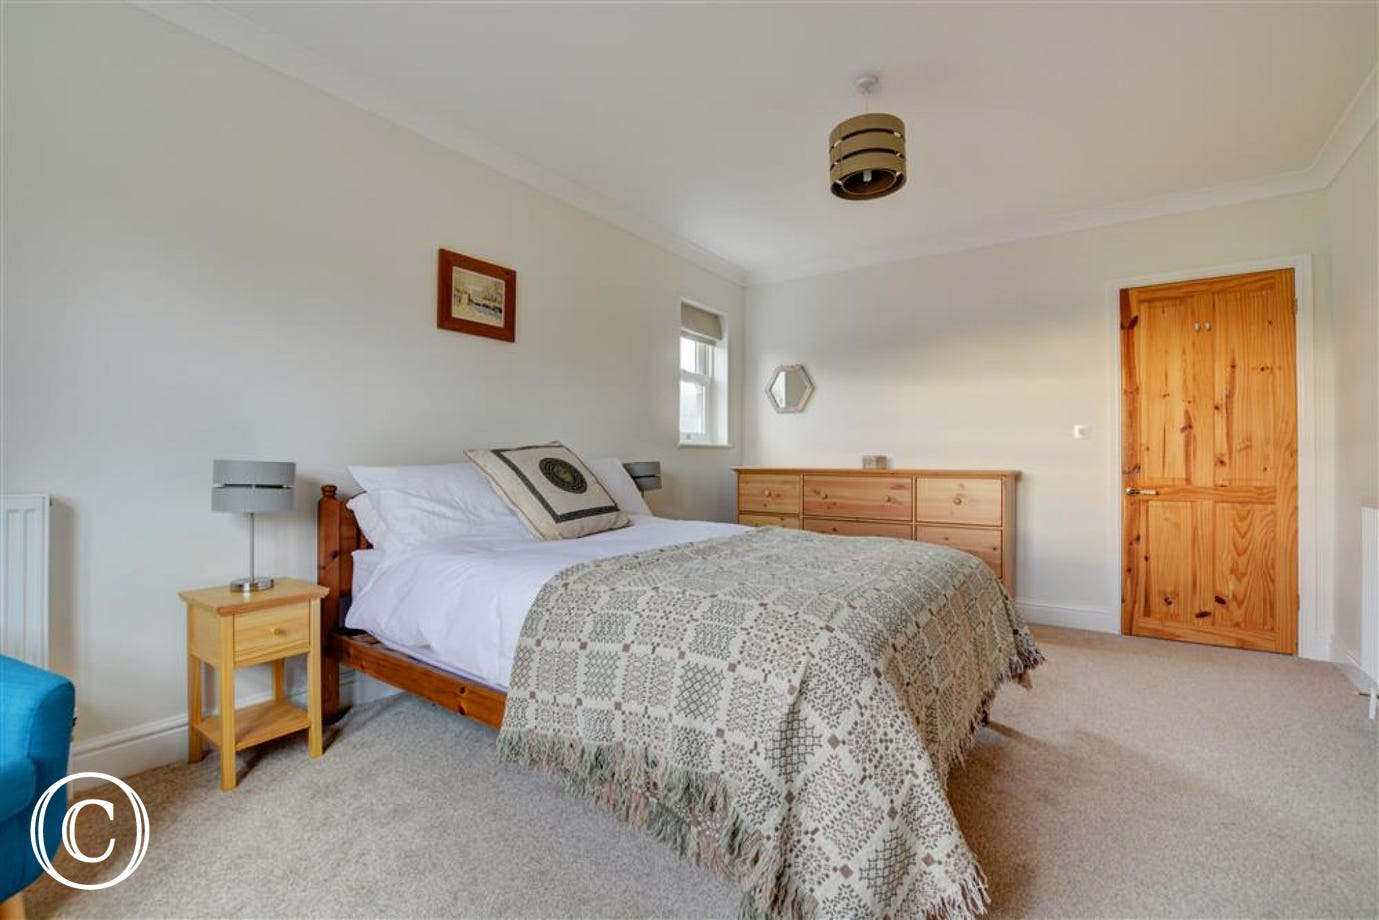 The main bedroom is a lovely spacious room